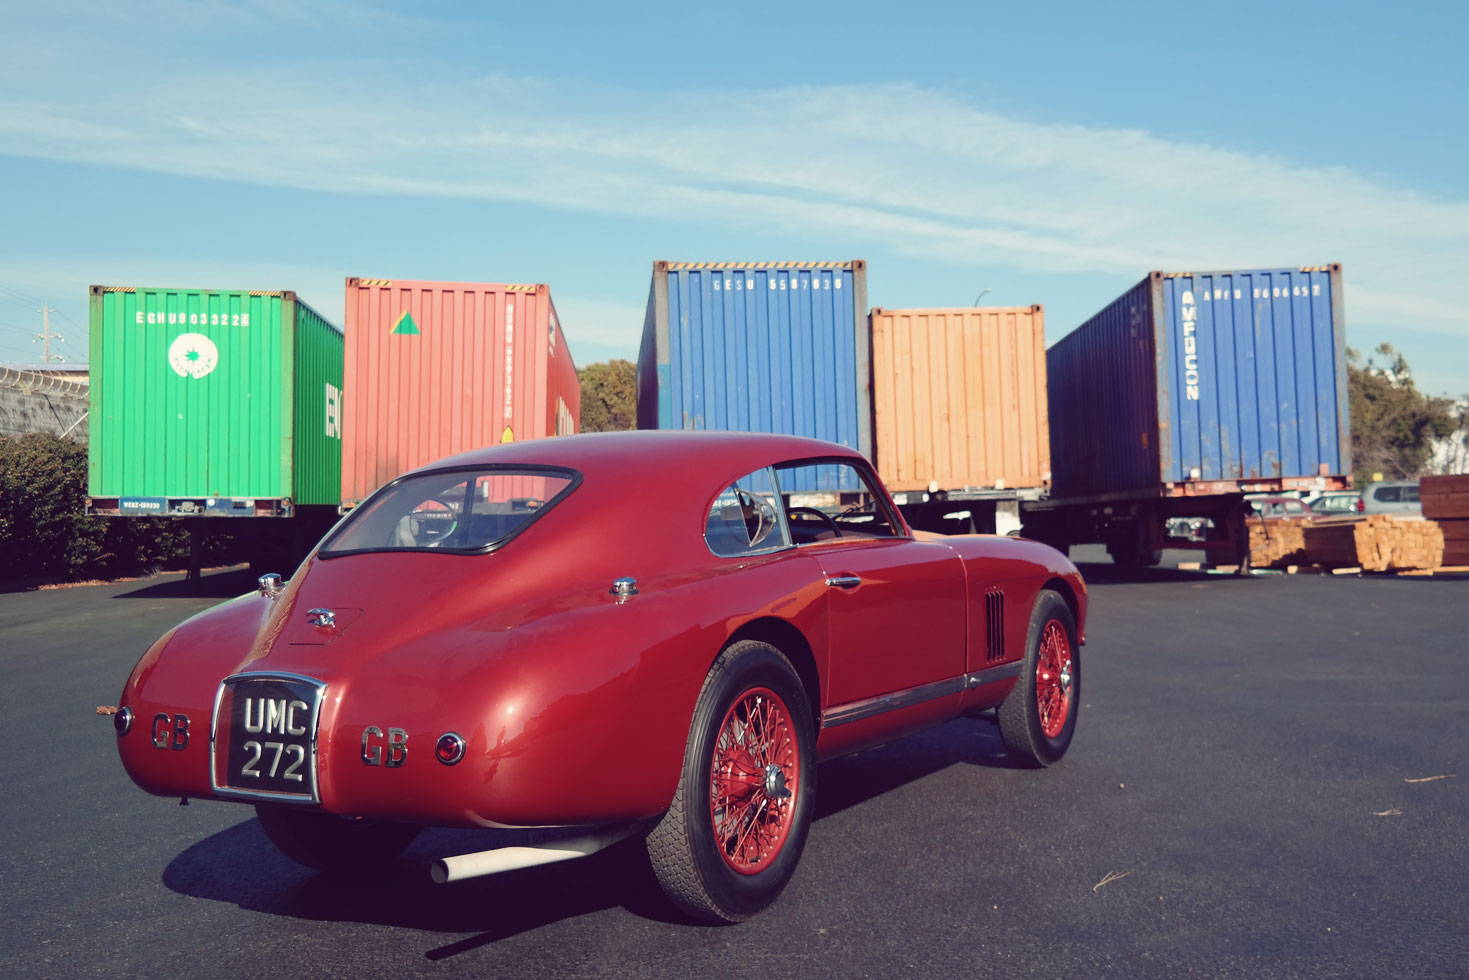 Classic car with heritage: David Brown's DB2